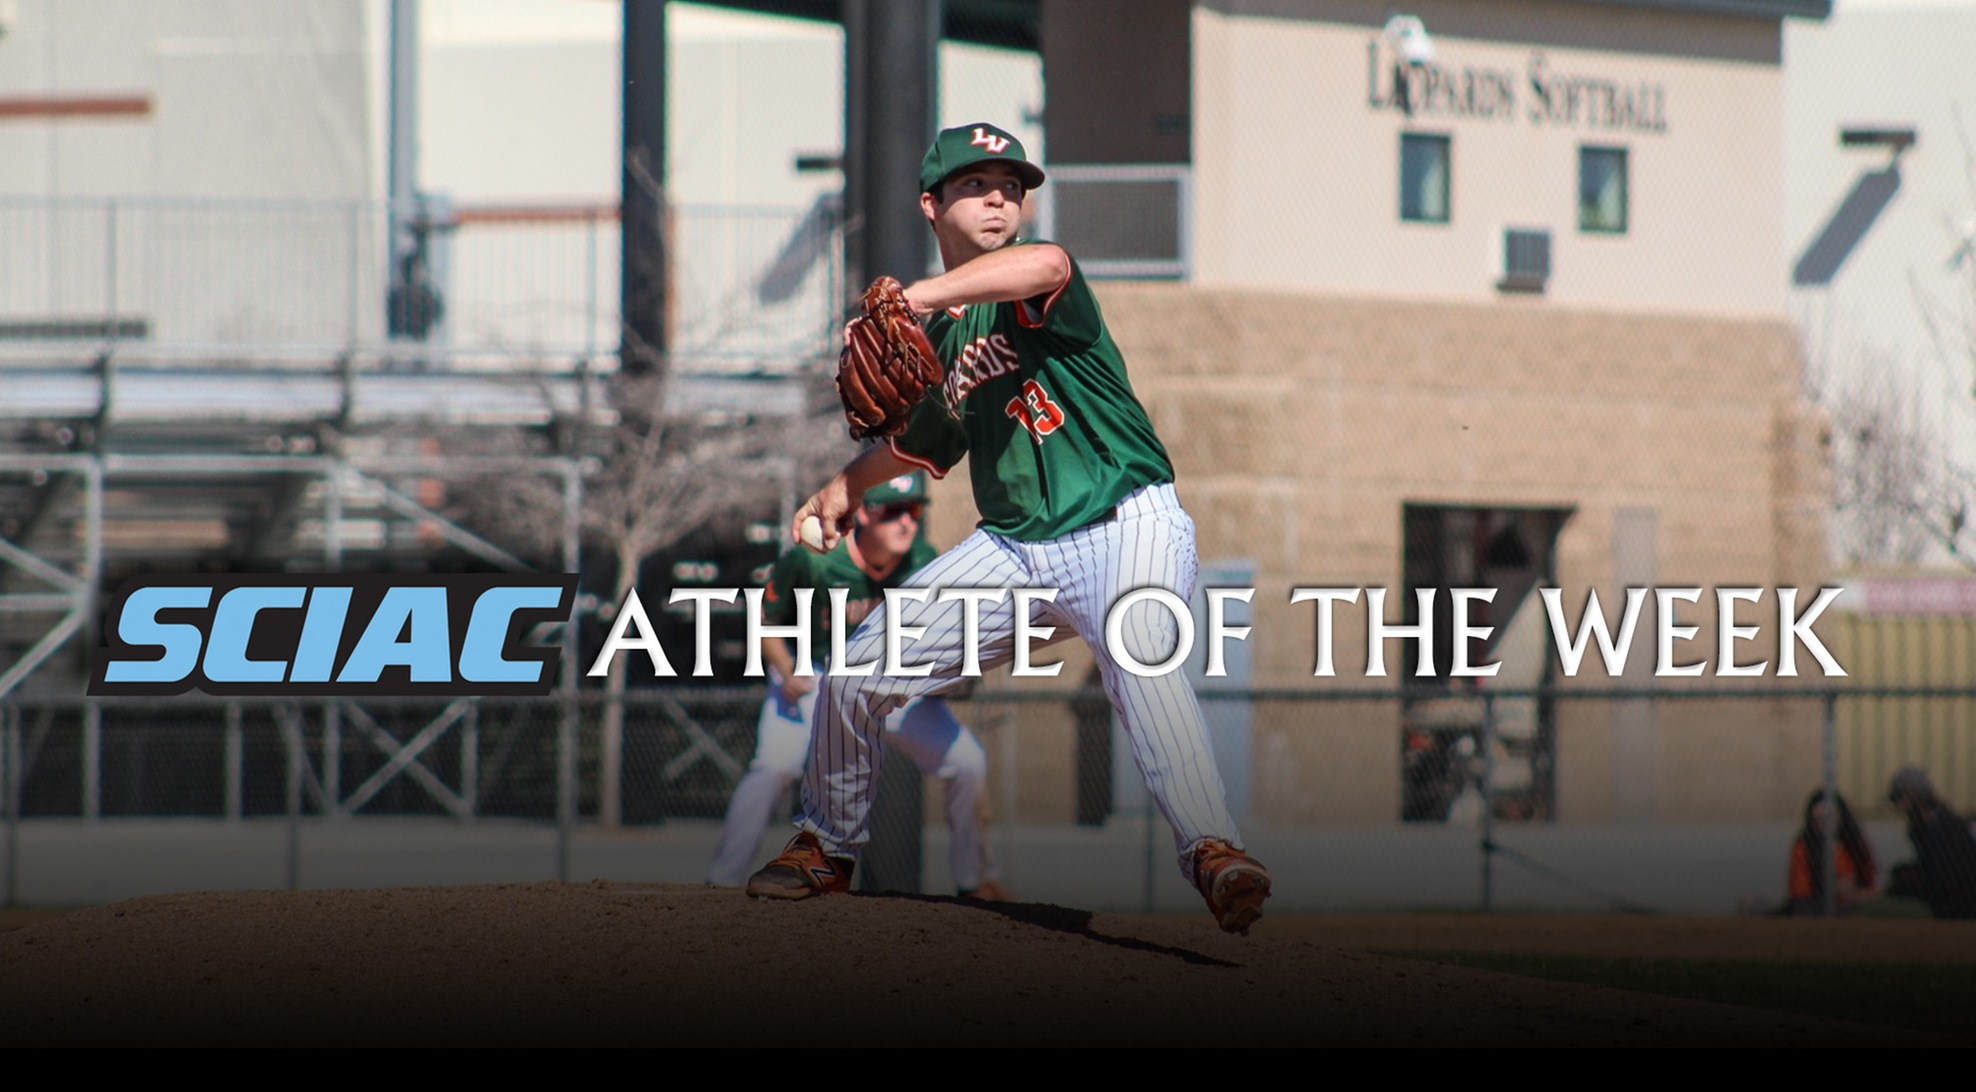 Norman tabbed SCIAC Athlete of the Week